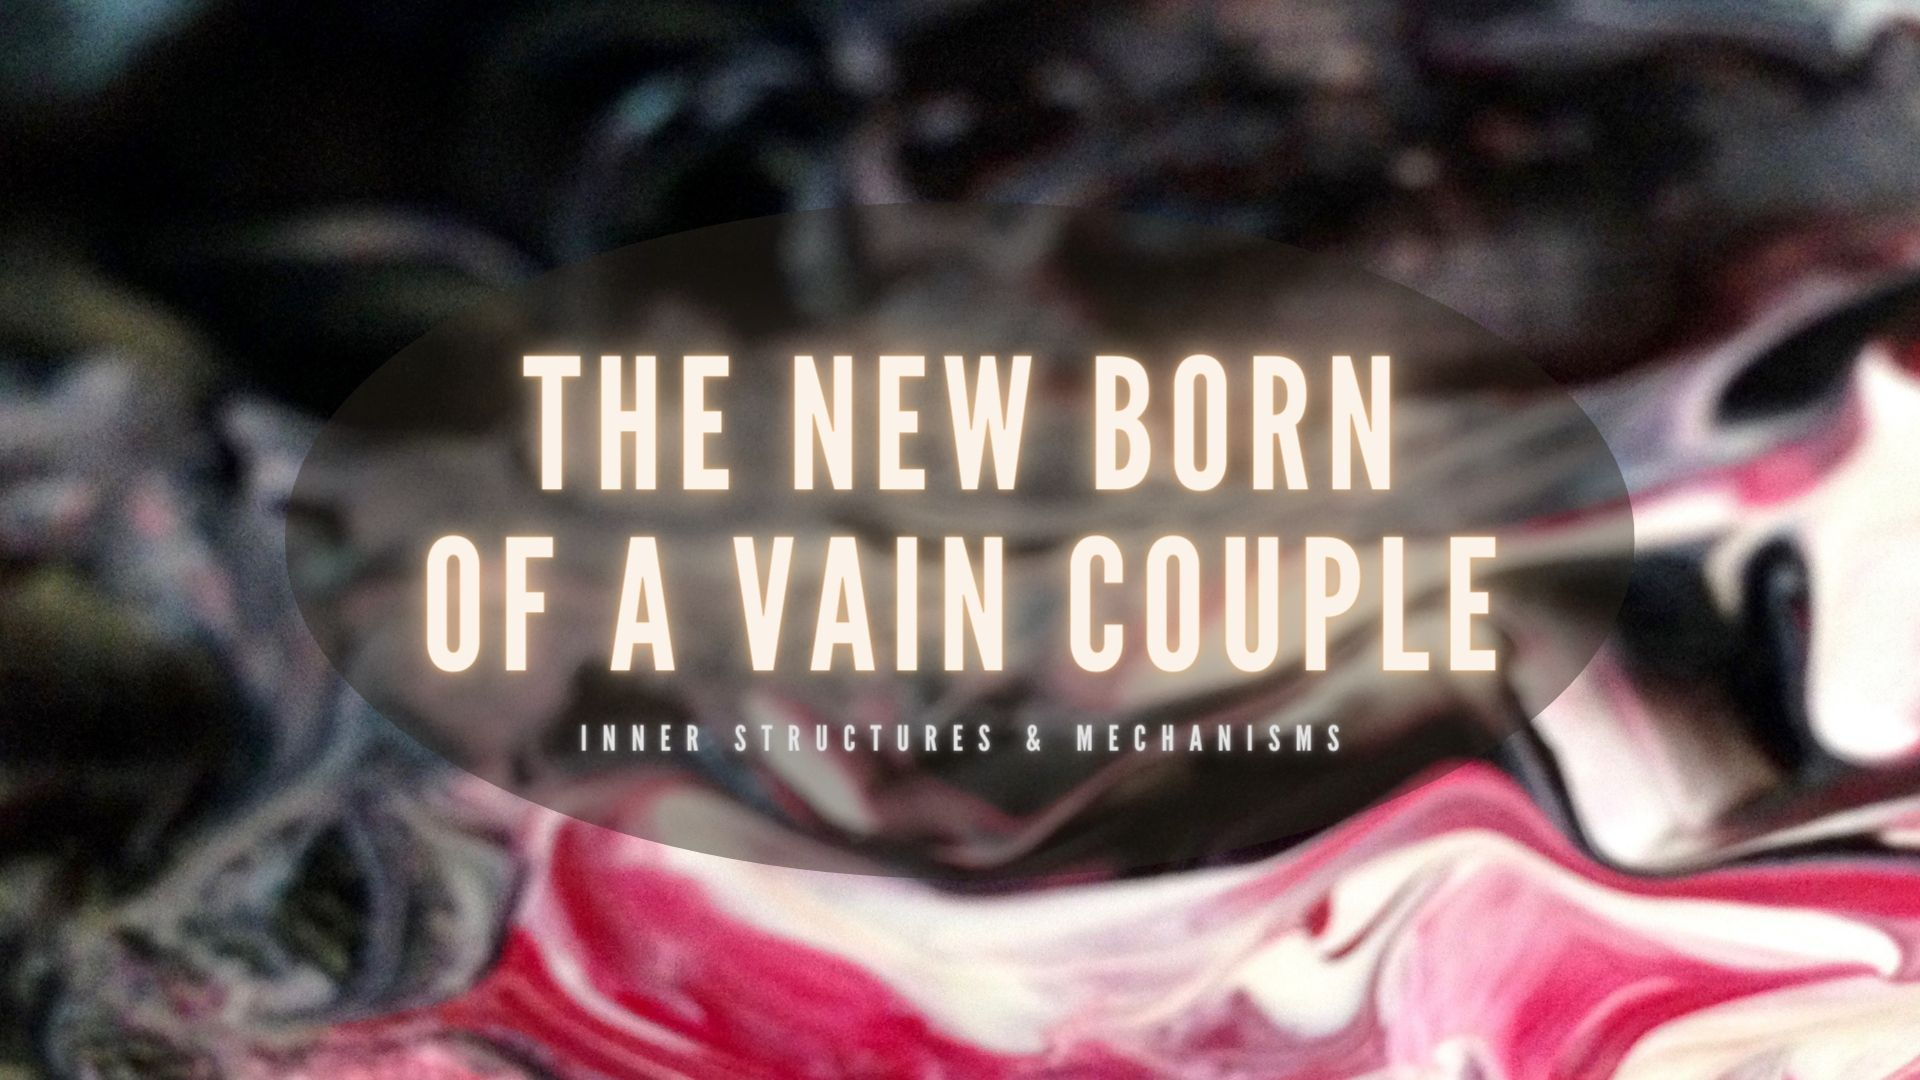 THE NEW BORN OF A VAIN COUPLE